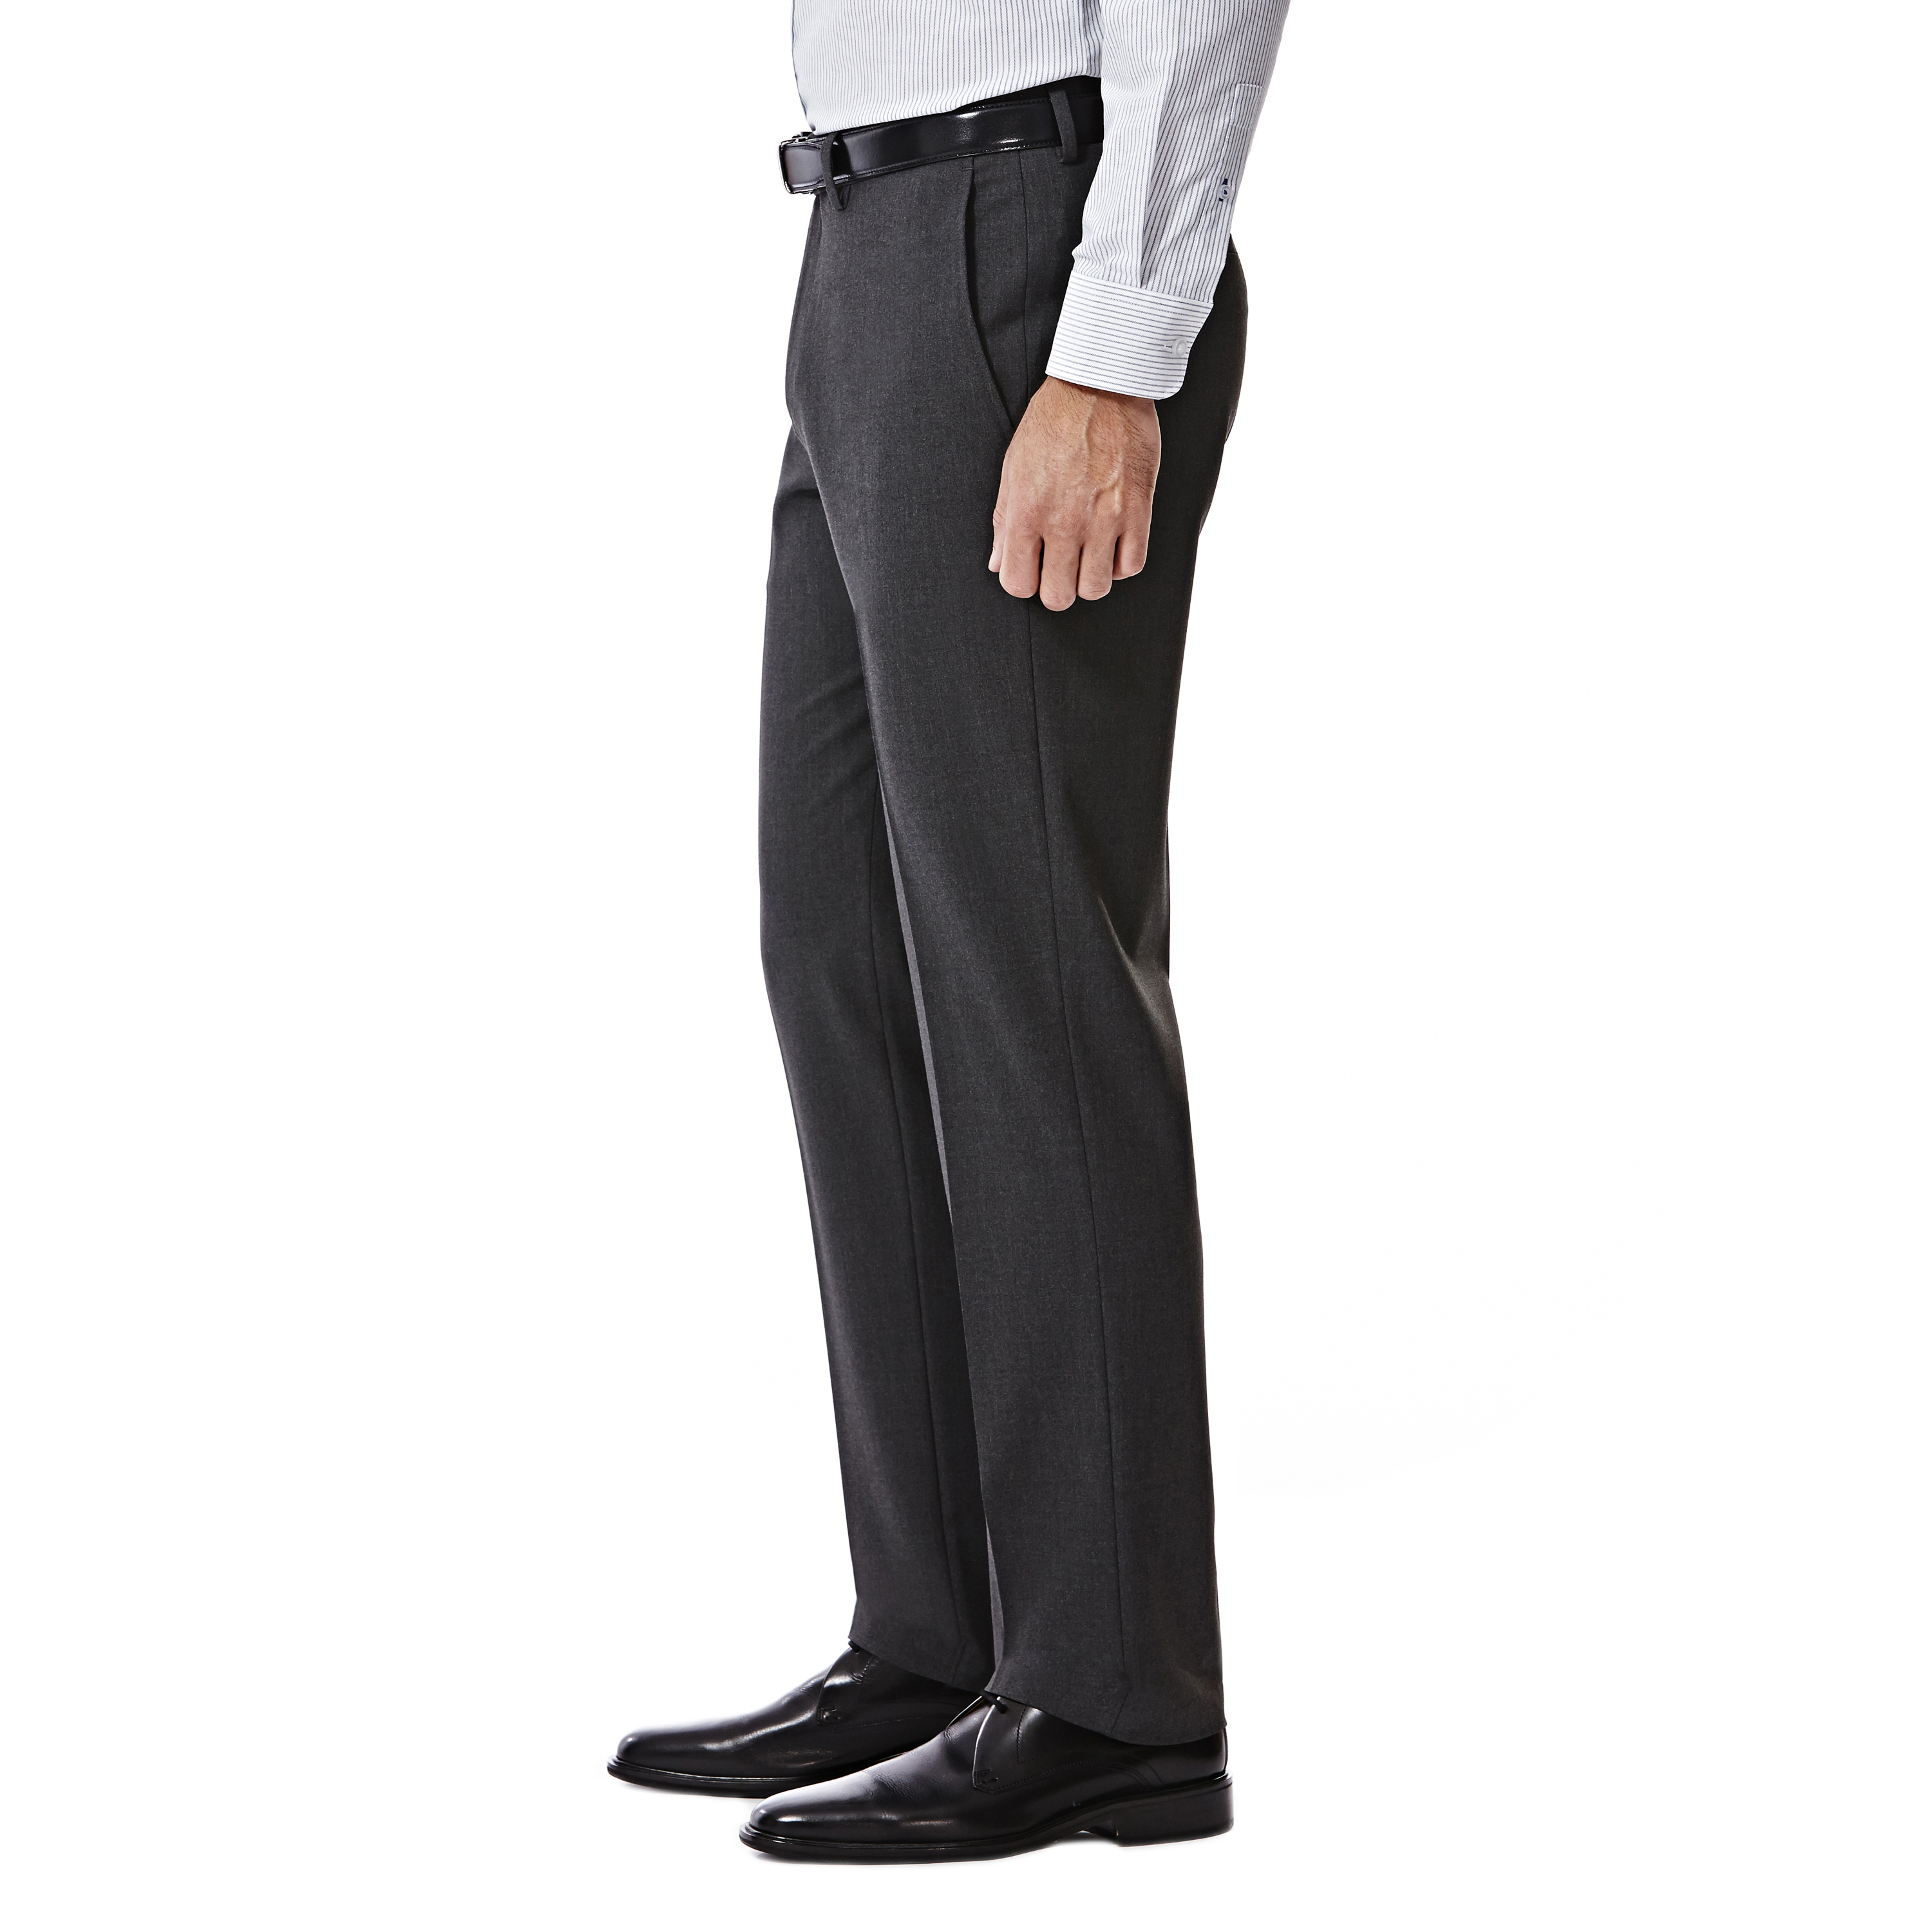 Haggar 4-Way Stretch Solid Flat Front Slim Fit Suit Separate Pant and 2-Button Coat Haggar Men/'s Tailored HY70295 J.M